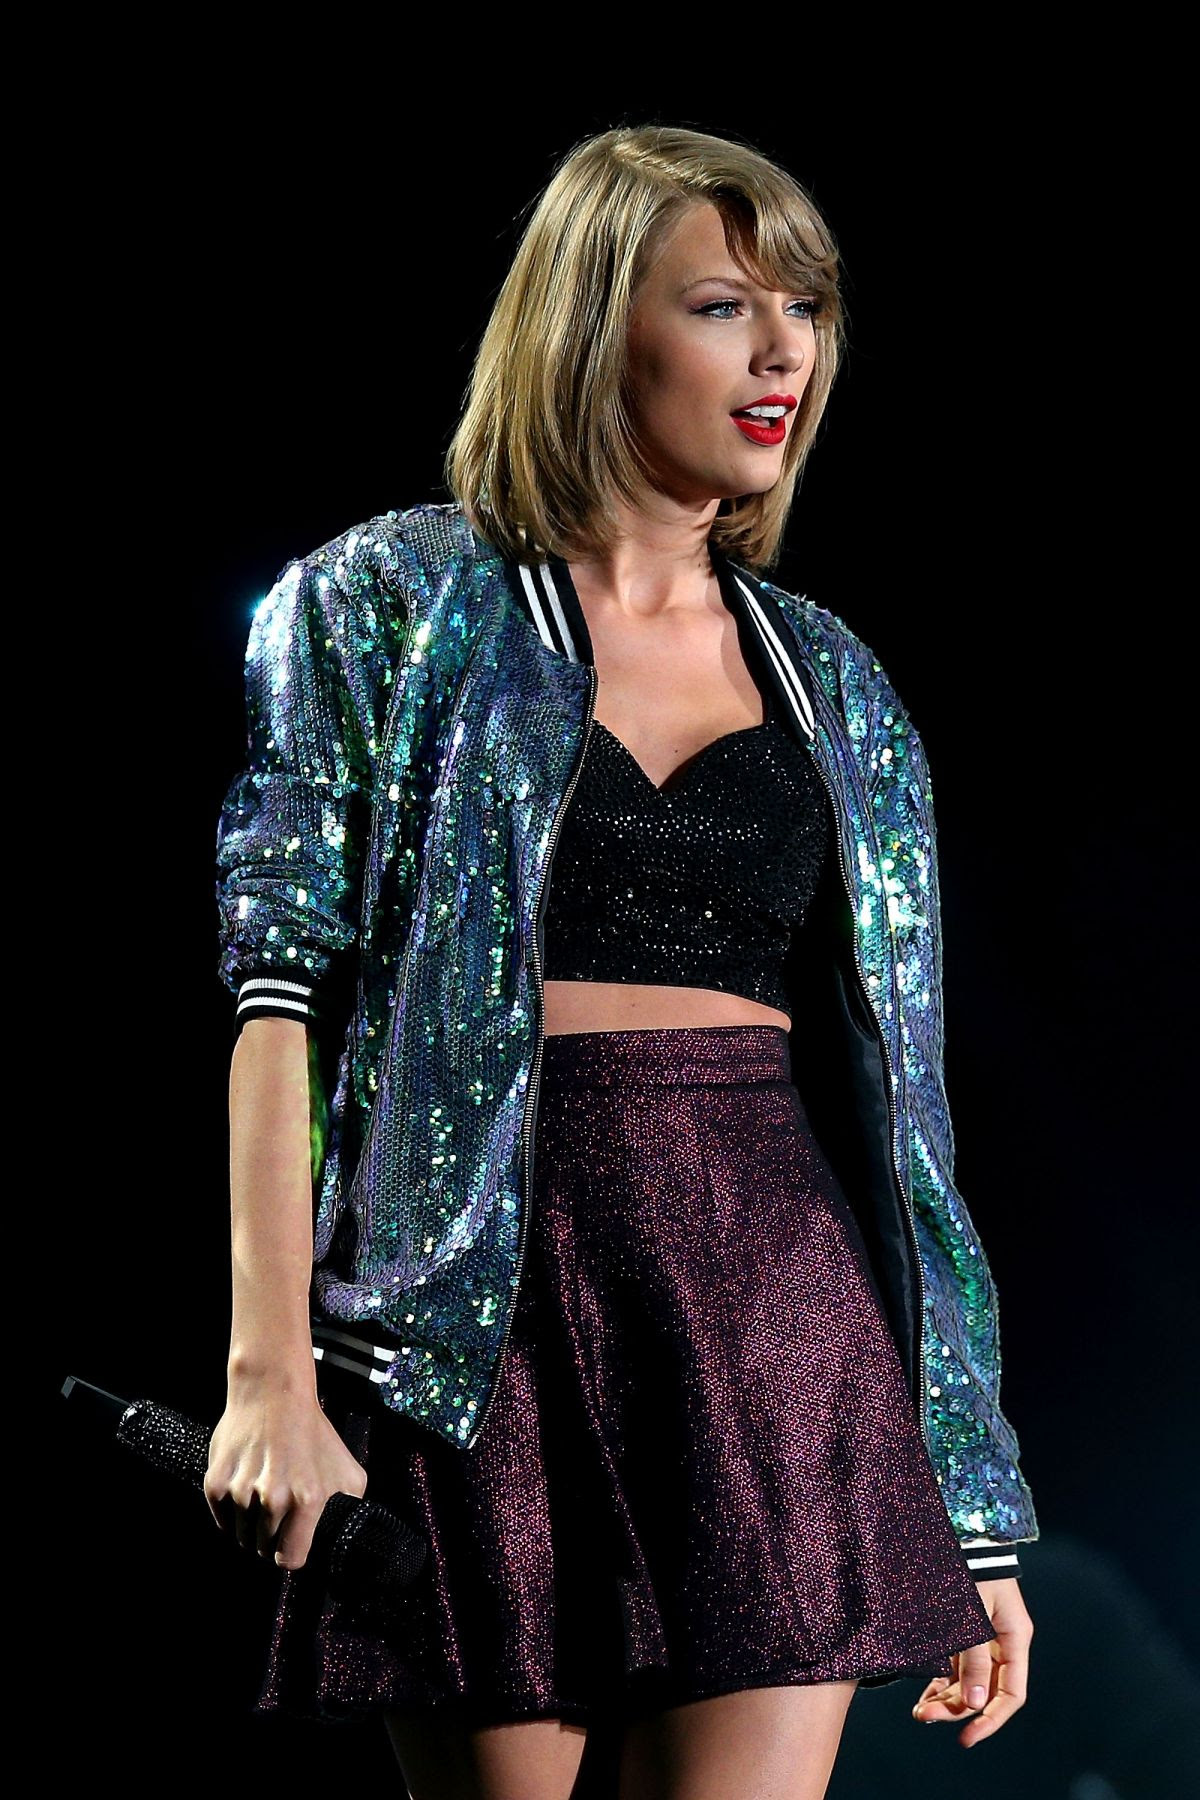 TAYLOR SWIFT Performs at The 1989 World Tour in Melbourne 12/10/2015